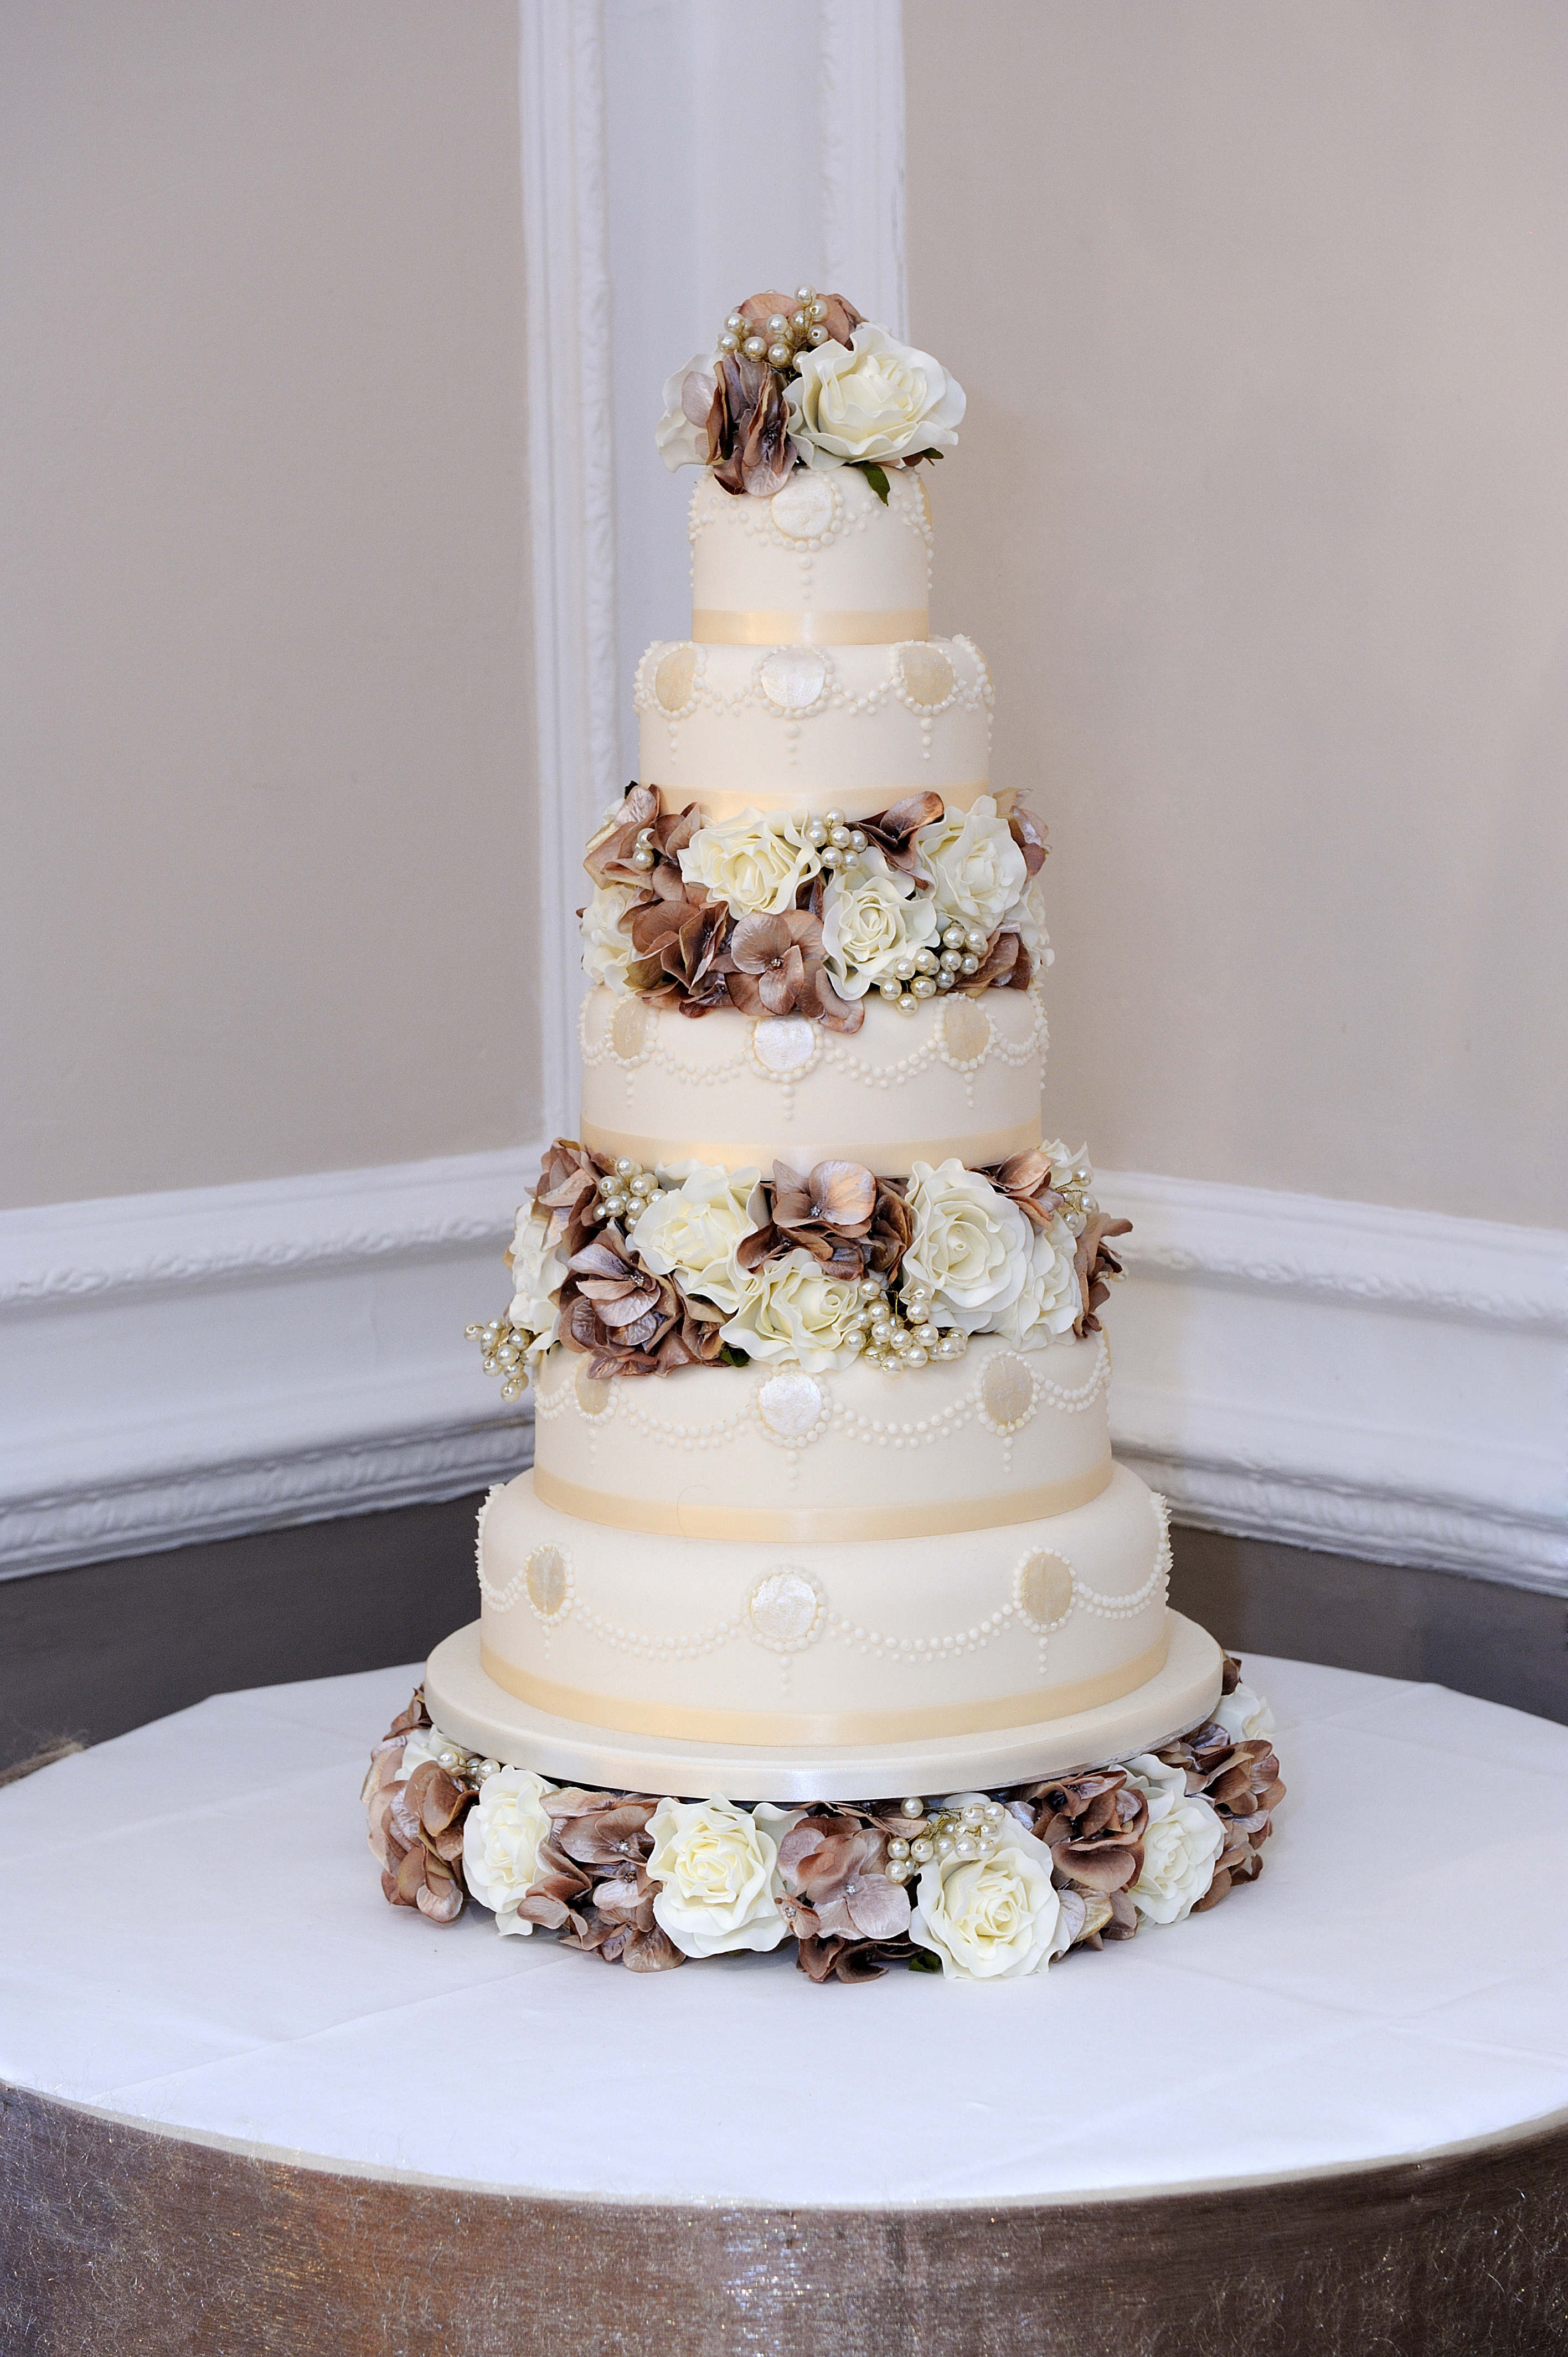 Unique Award Winning Wedding Cake Designs